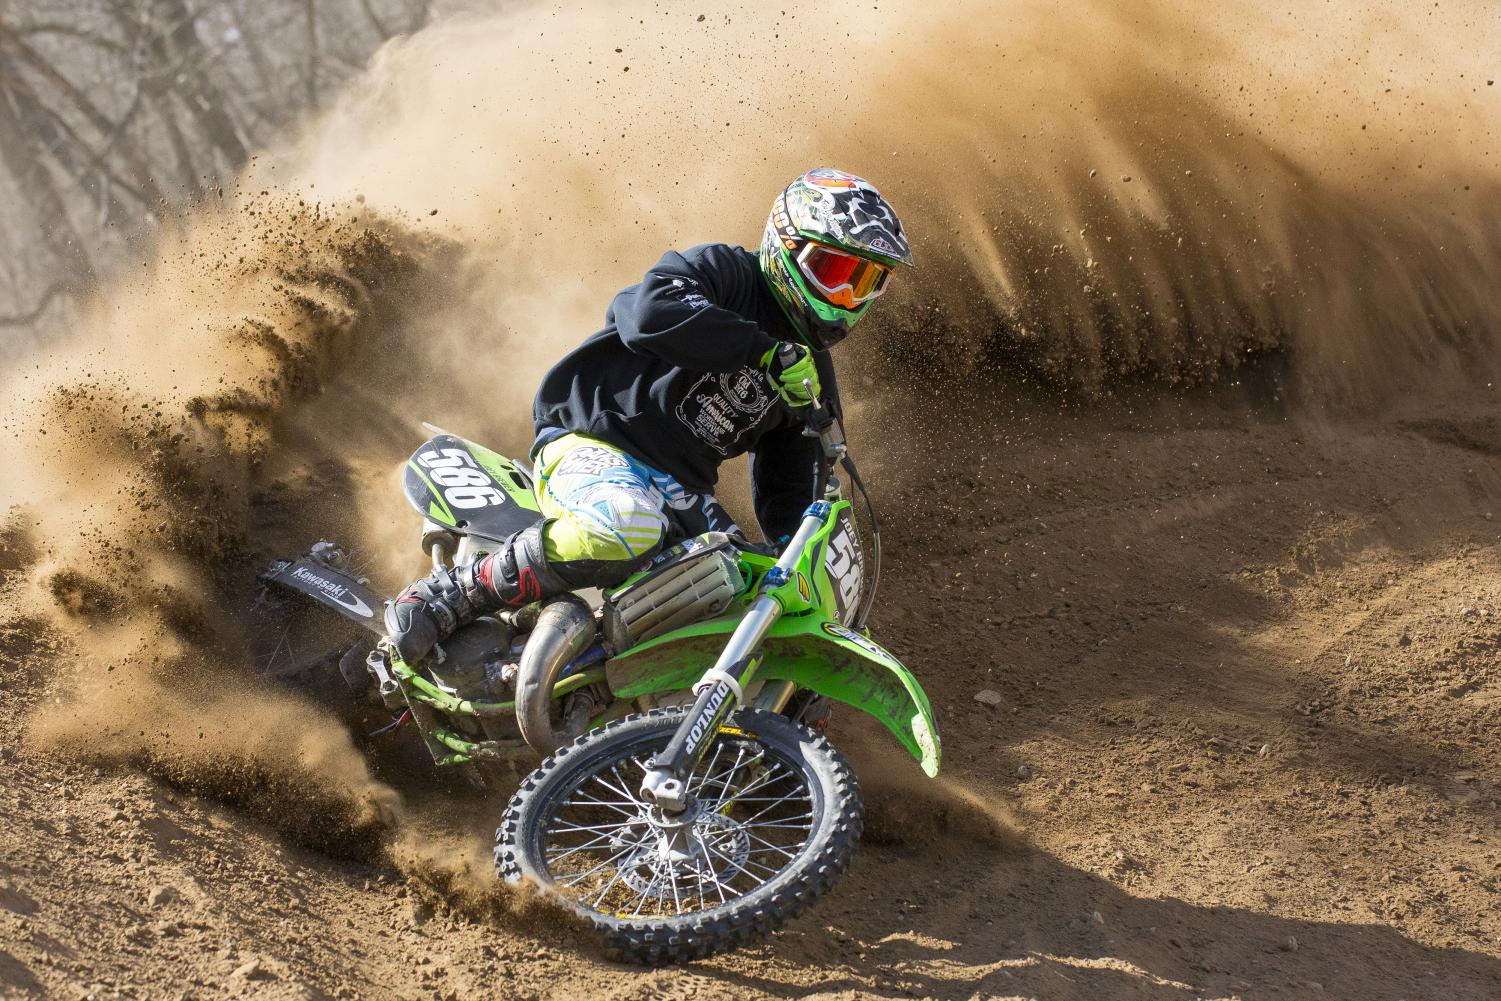 Joey Brewer of Ottawa washes out a berm on his Kawasaki KX125 while taking a high speed corner during practice at Fox Valley Off-Road on March 25, 2018. Brewer, a former top A class rider has been riding motocross since age ten.